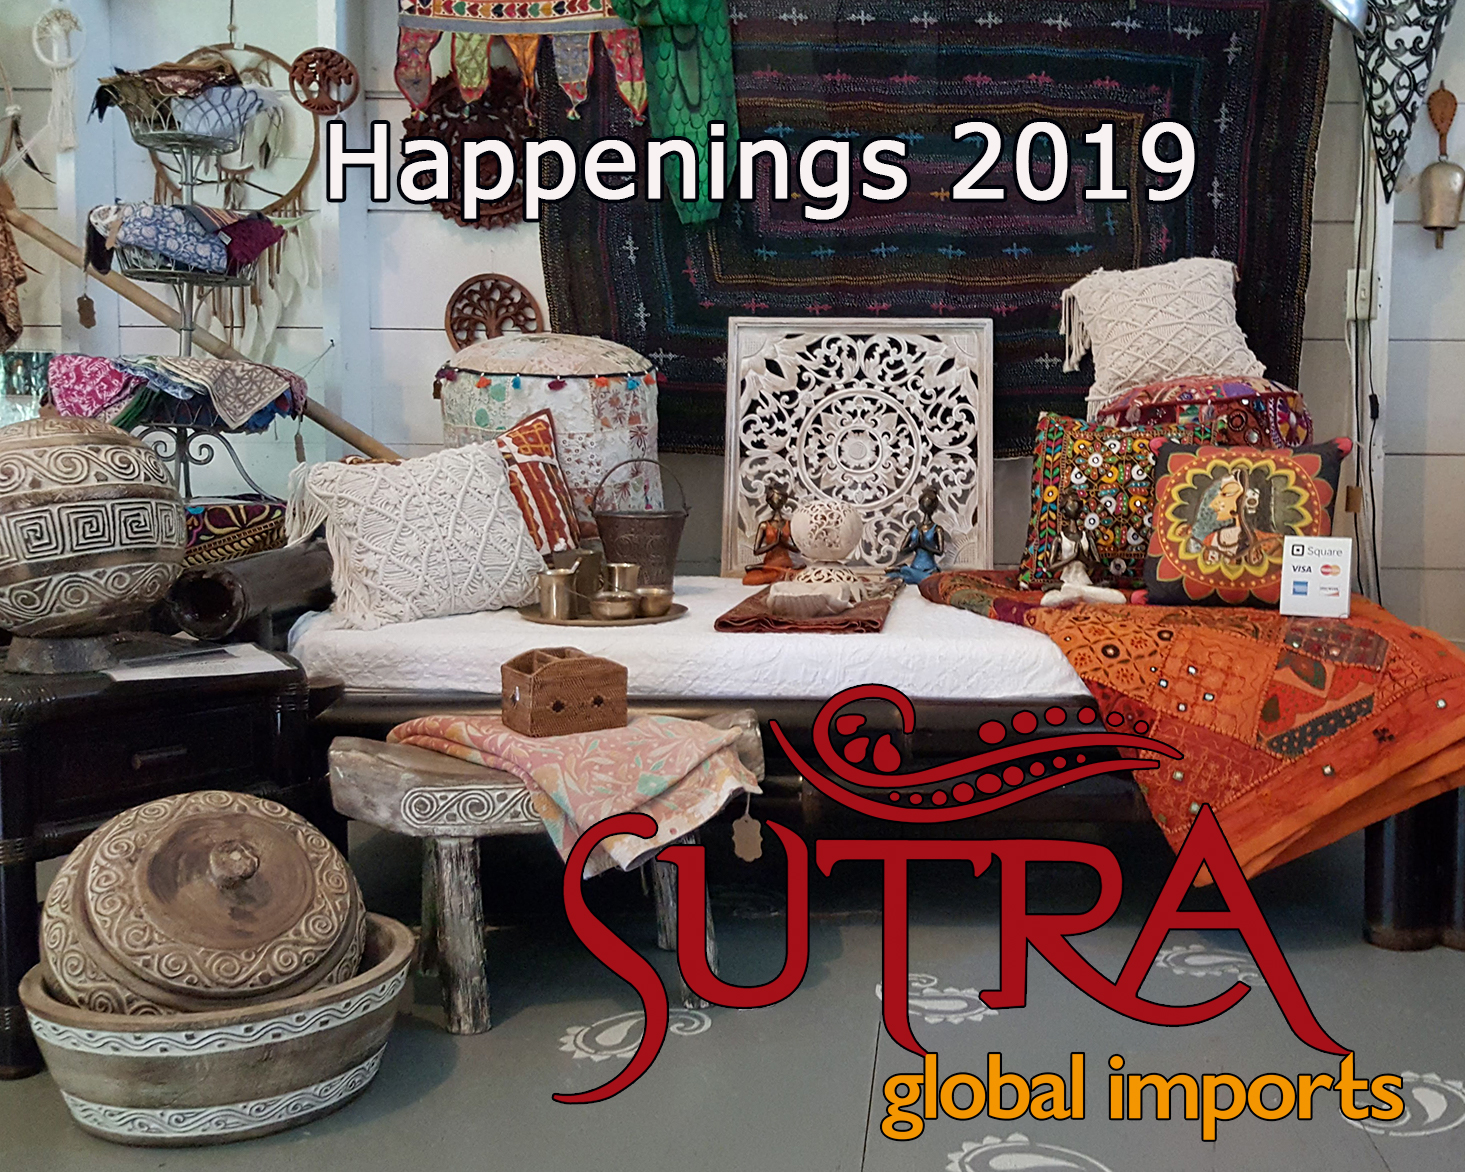 Copy of Handmade Happenings 2019 - Sutra Global Imports